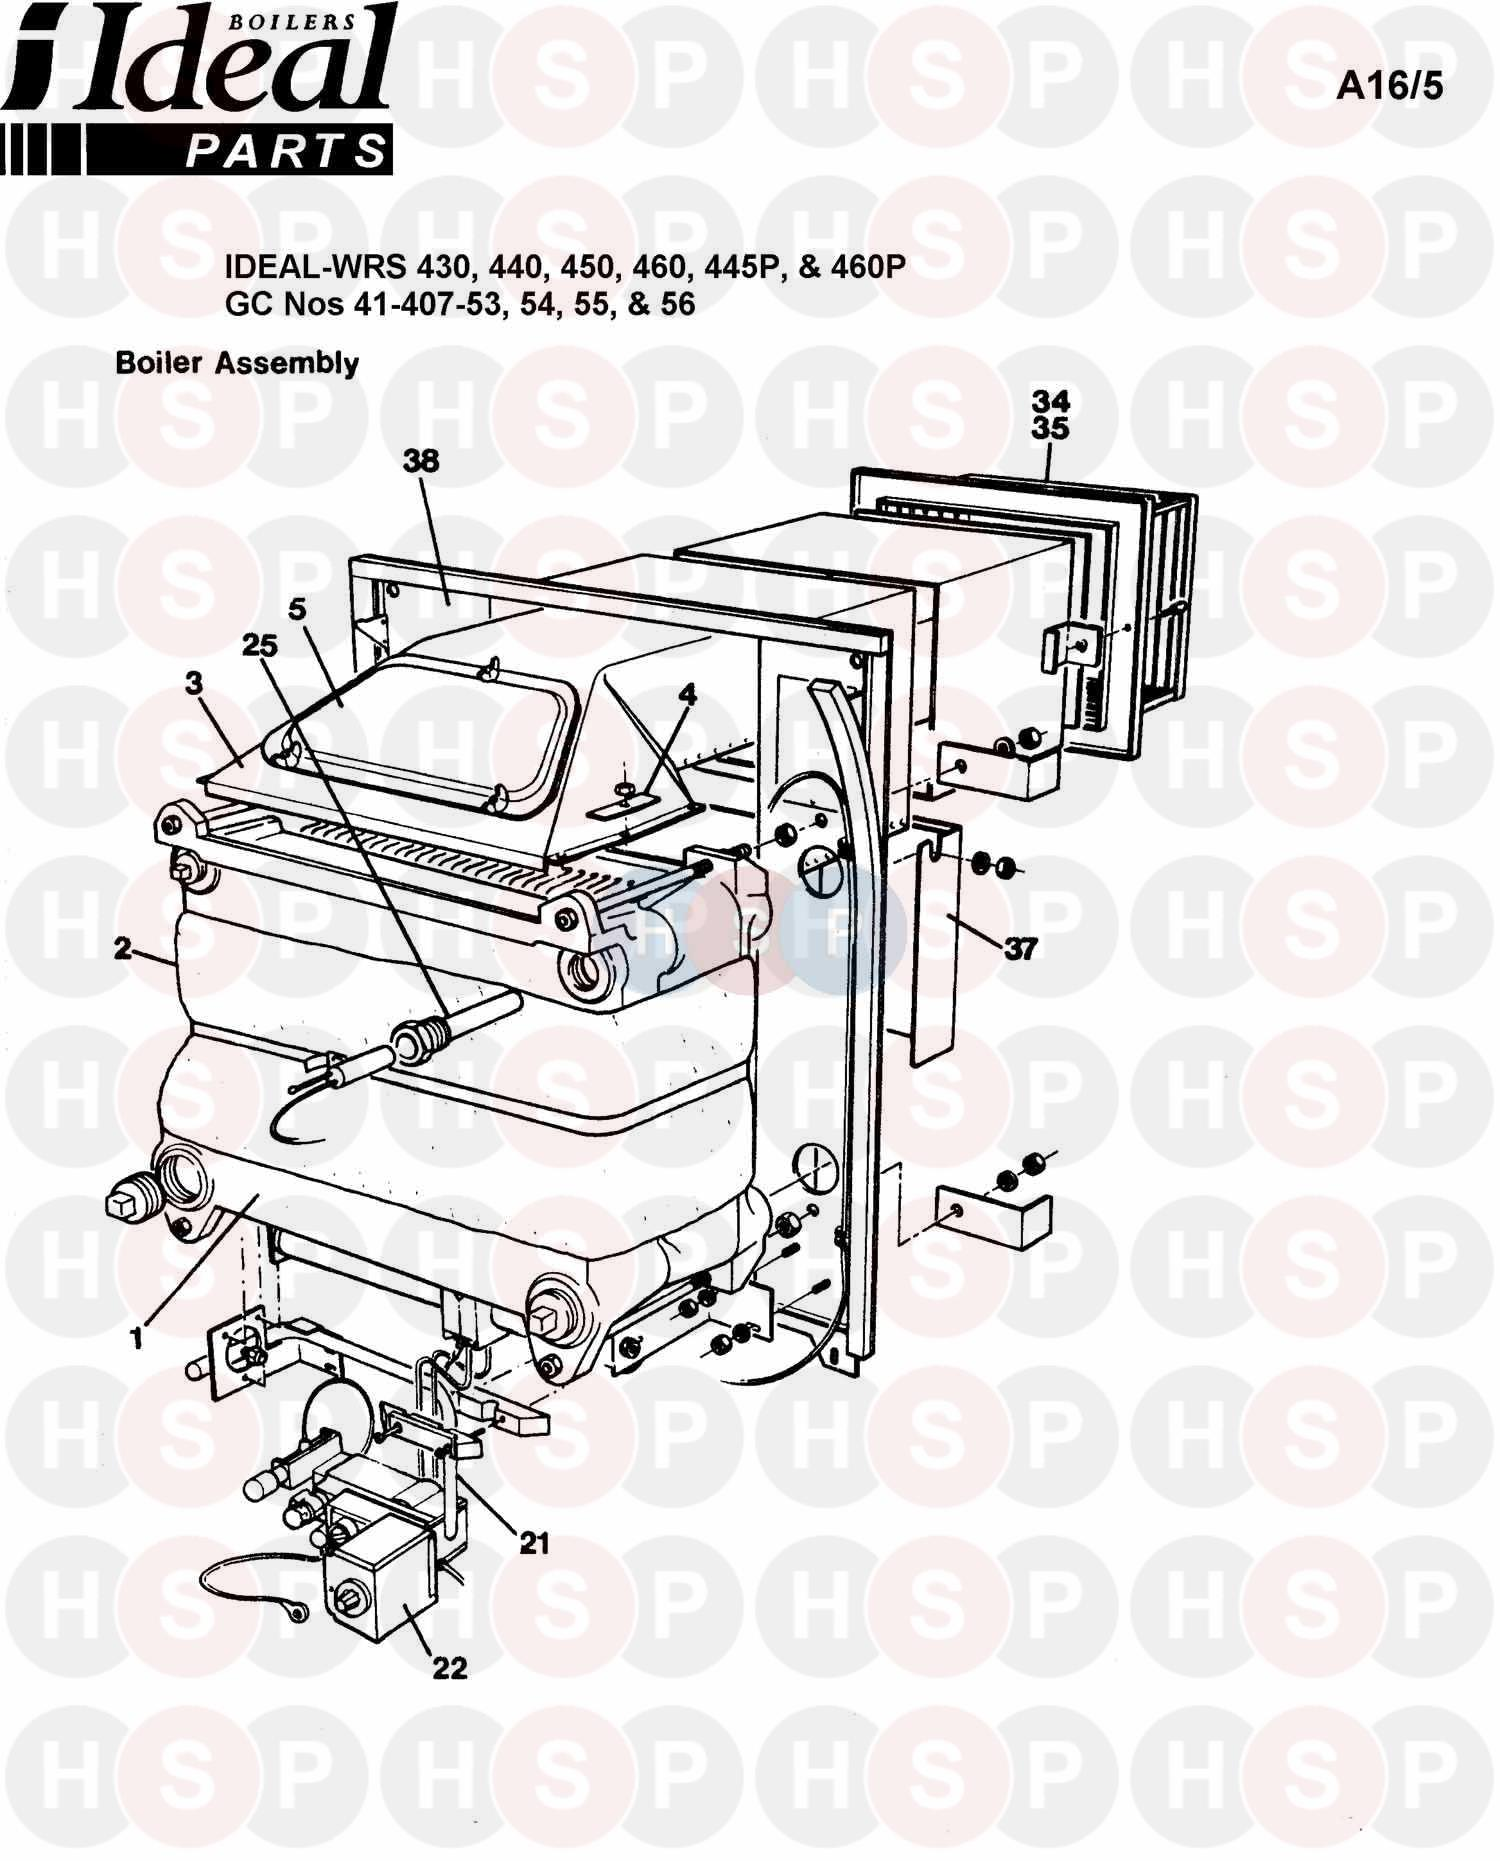 Ideal CONCORD WRS 430 Appliance Diagram (BOILER ASSEMBLY 1